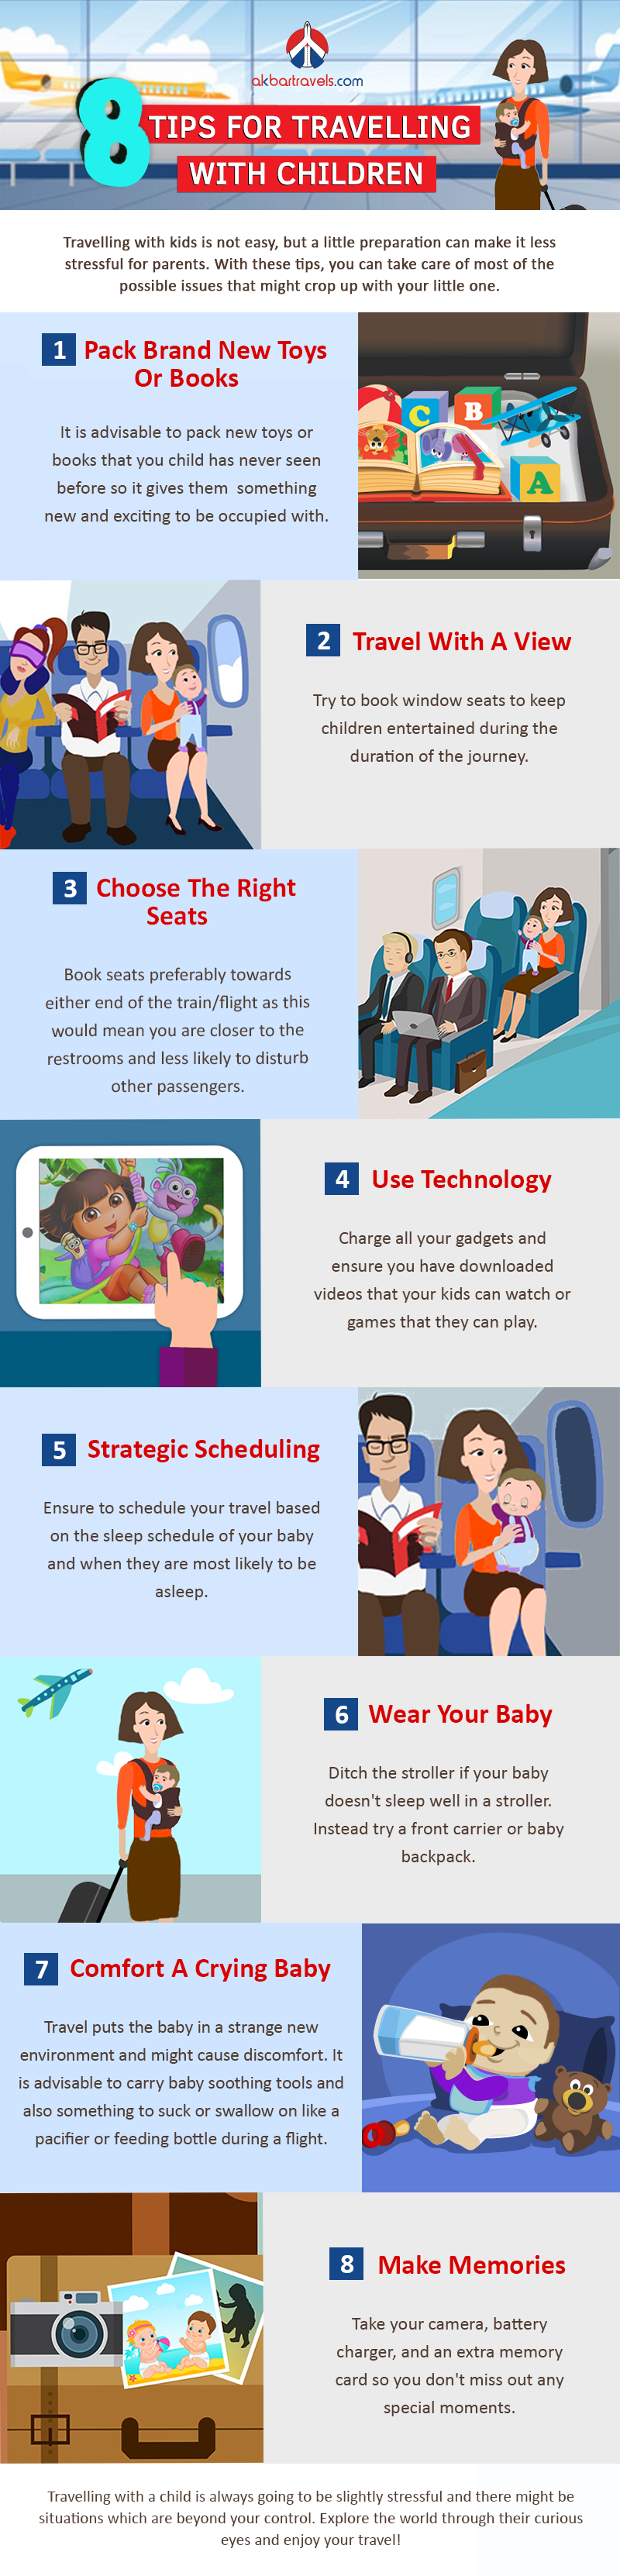 8 Tips For Travelling With Children